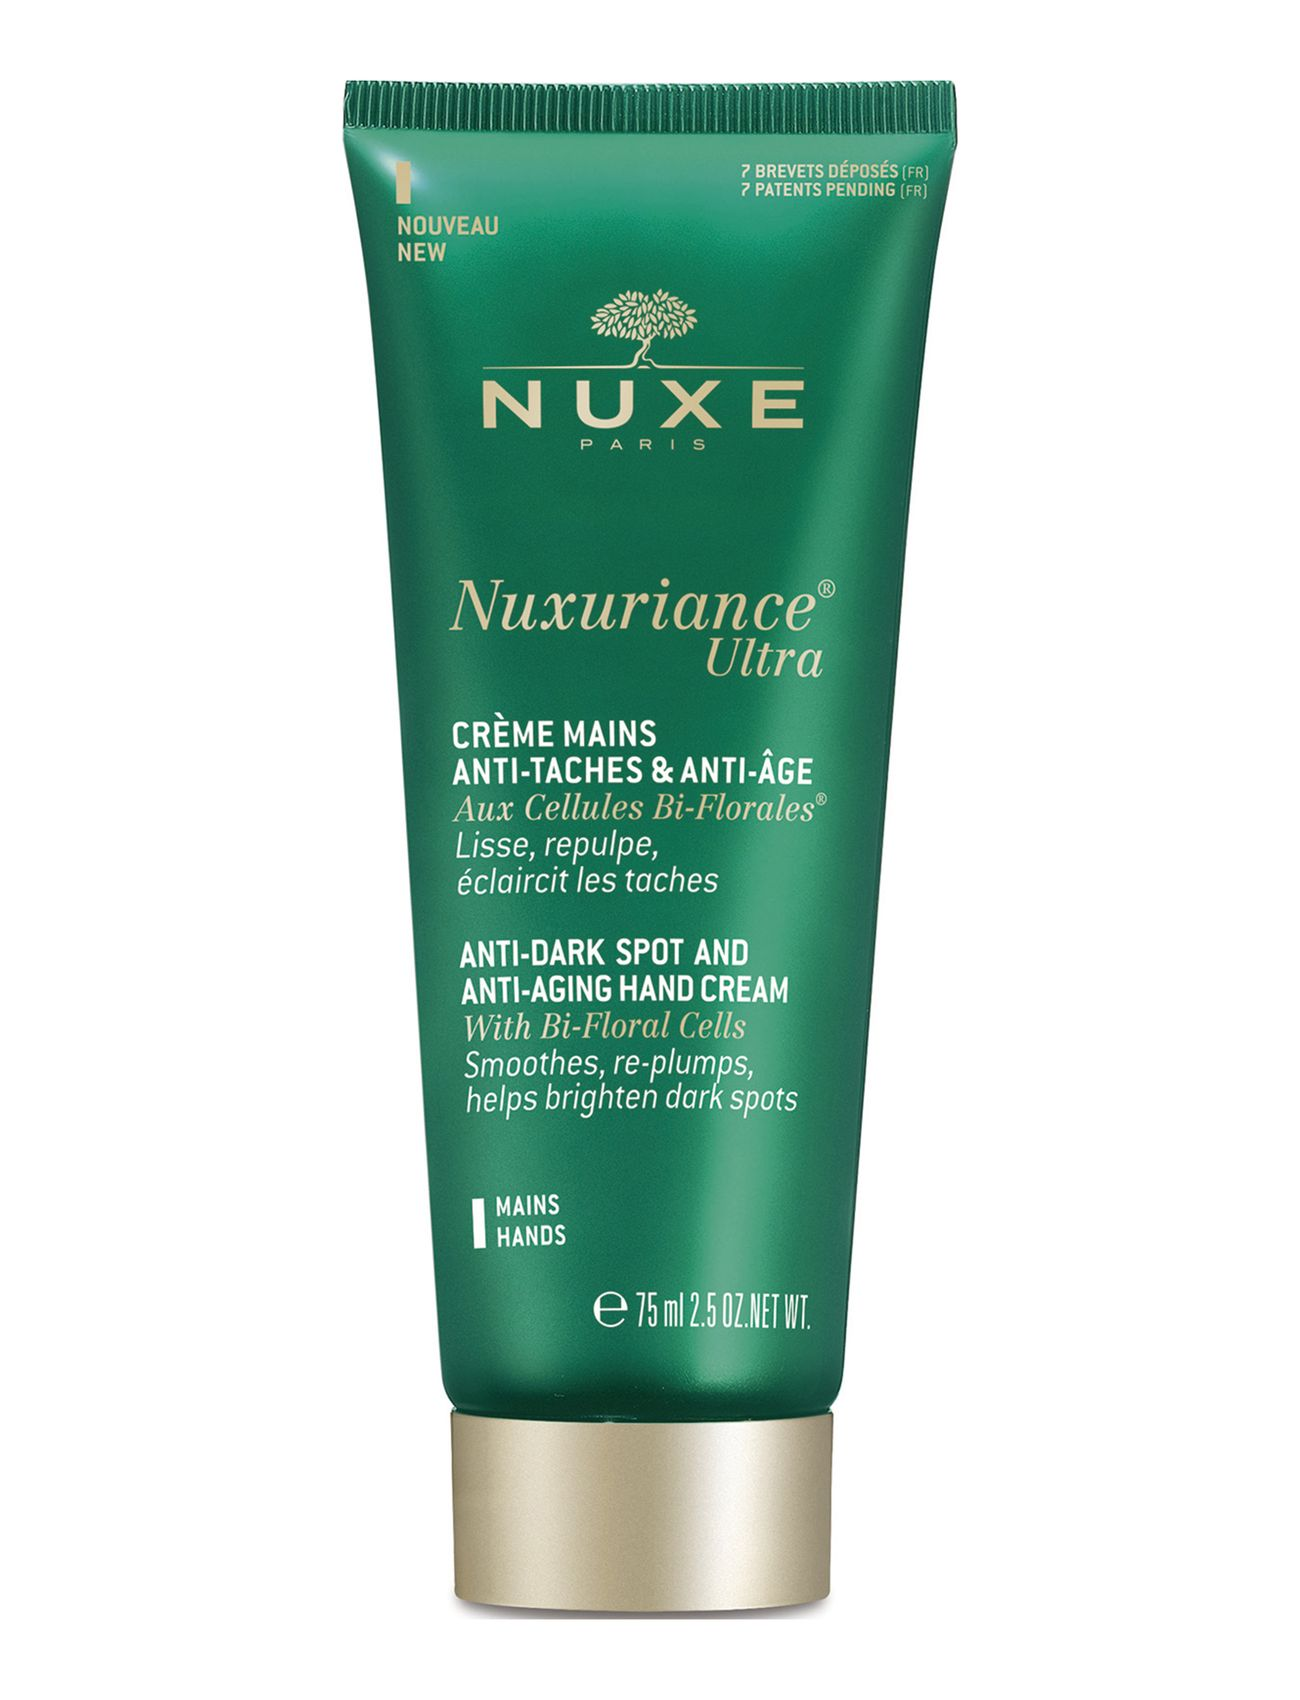 NUXE Nuxuriance handcreme 75 ml - CLEAR